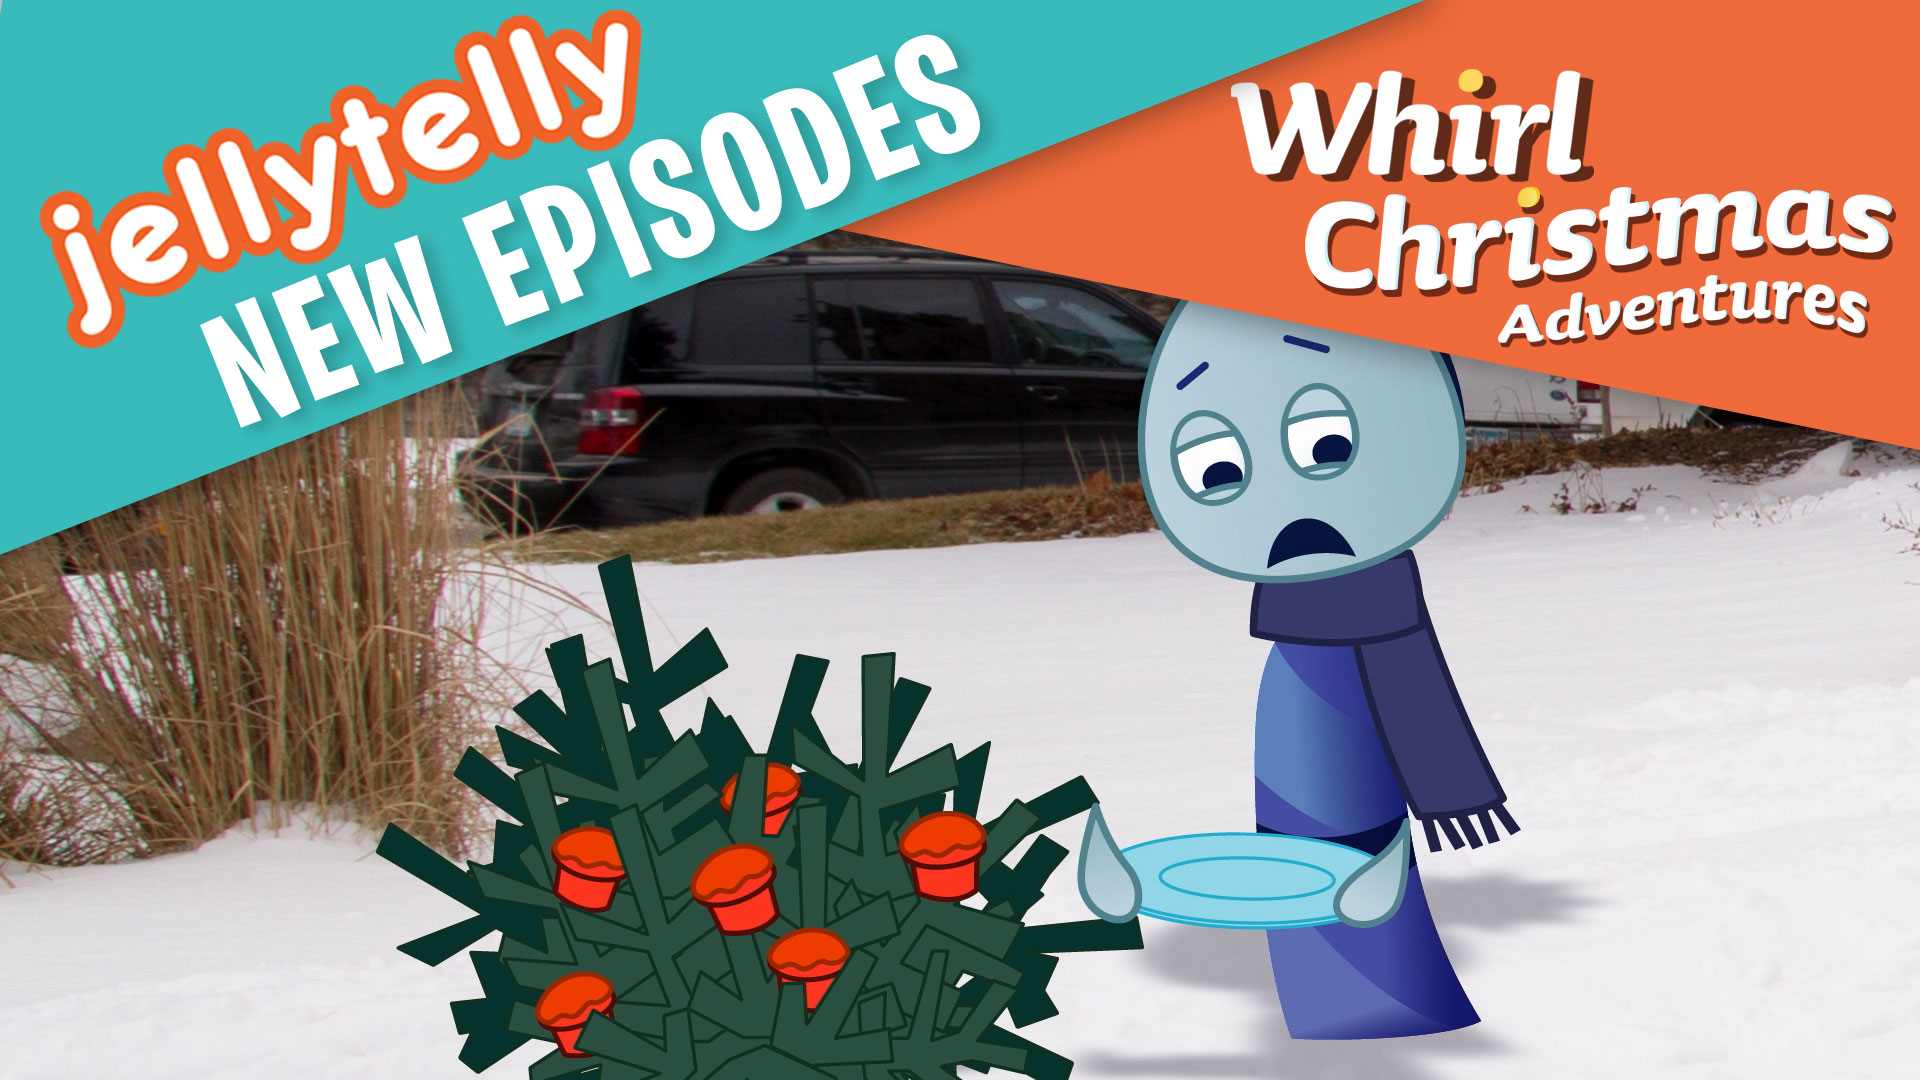 Whirl christmas 14 featured preview image